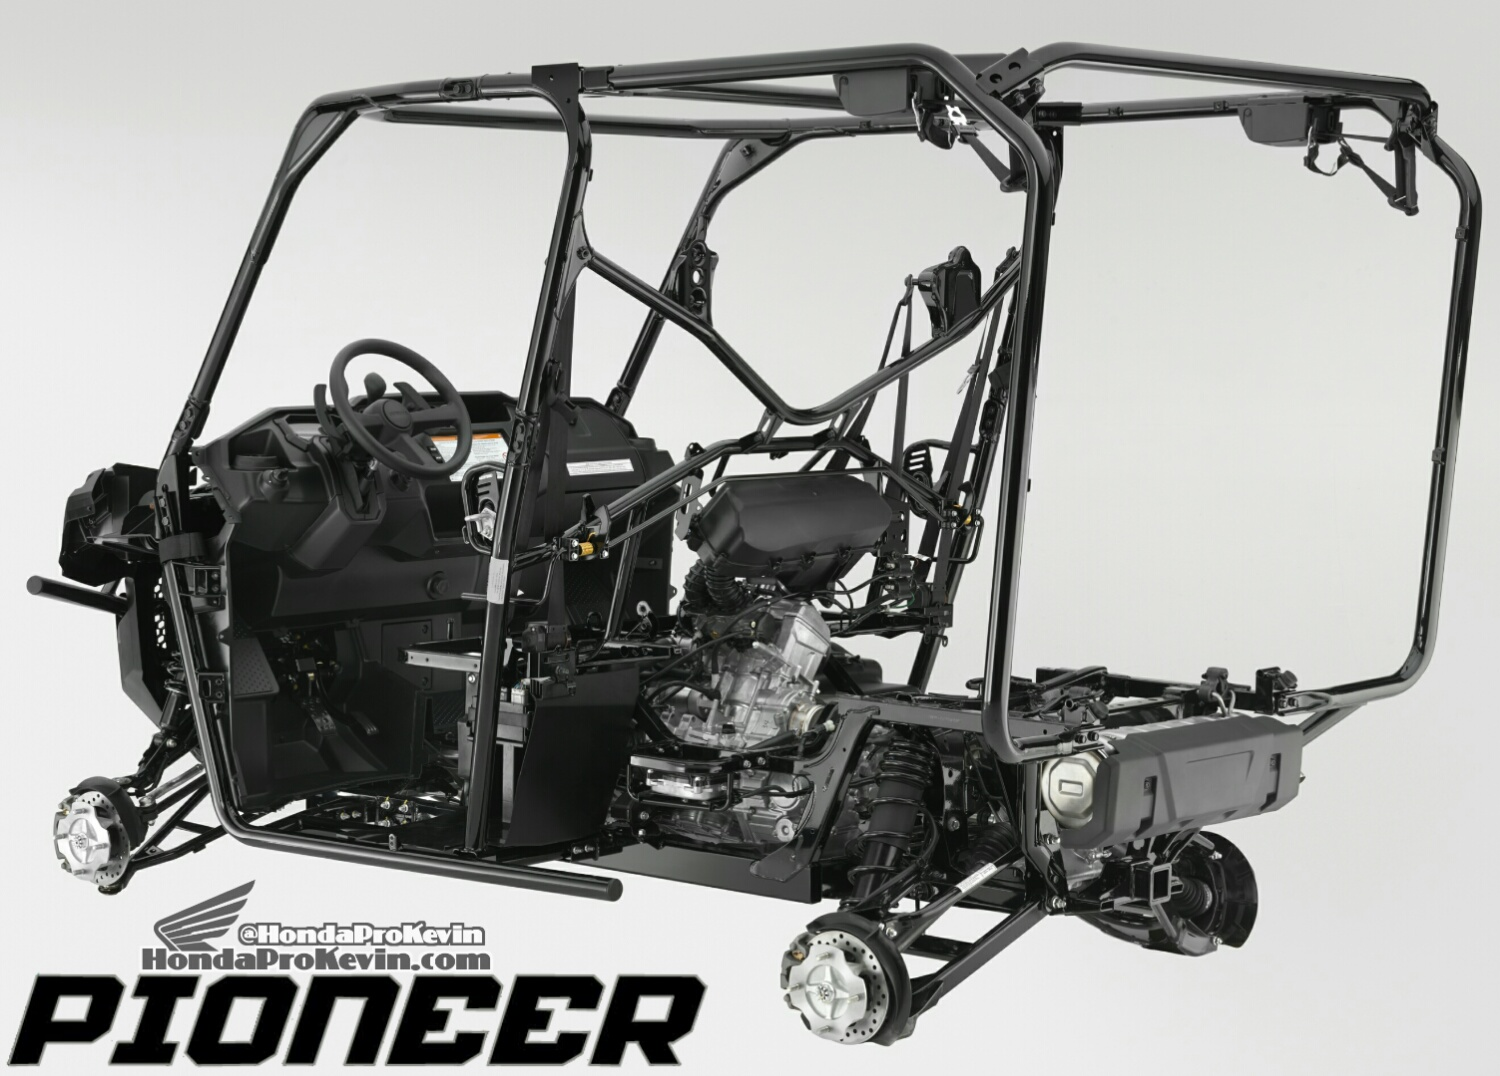 ... Honda Pioneer 1000 / 1000-5 Price : Side by Side ATV / UTV / SxS